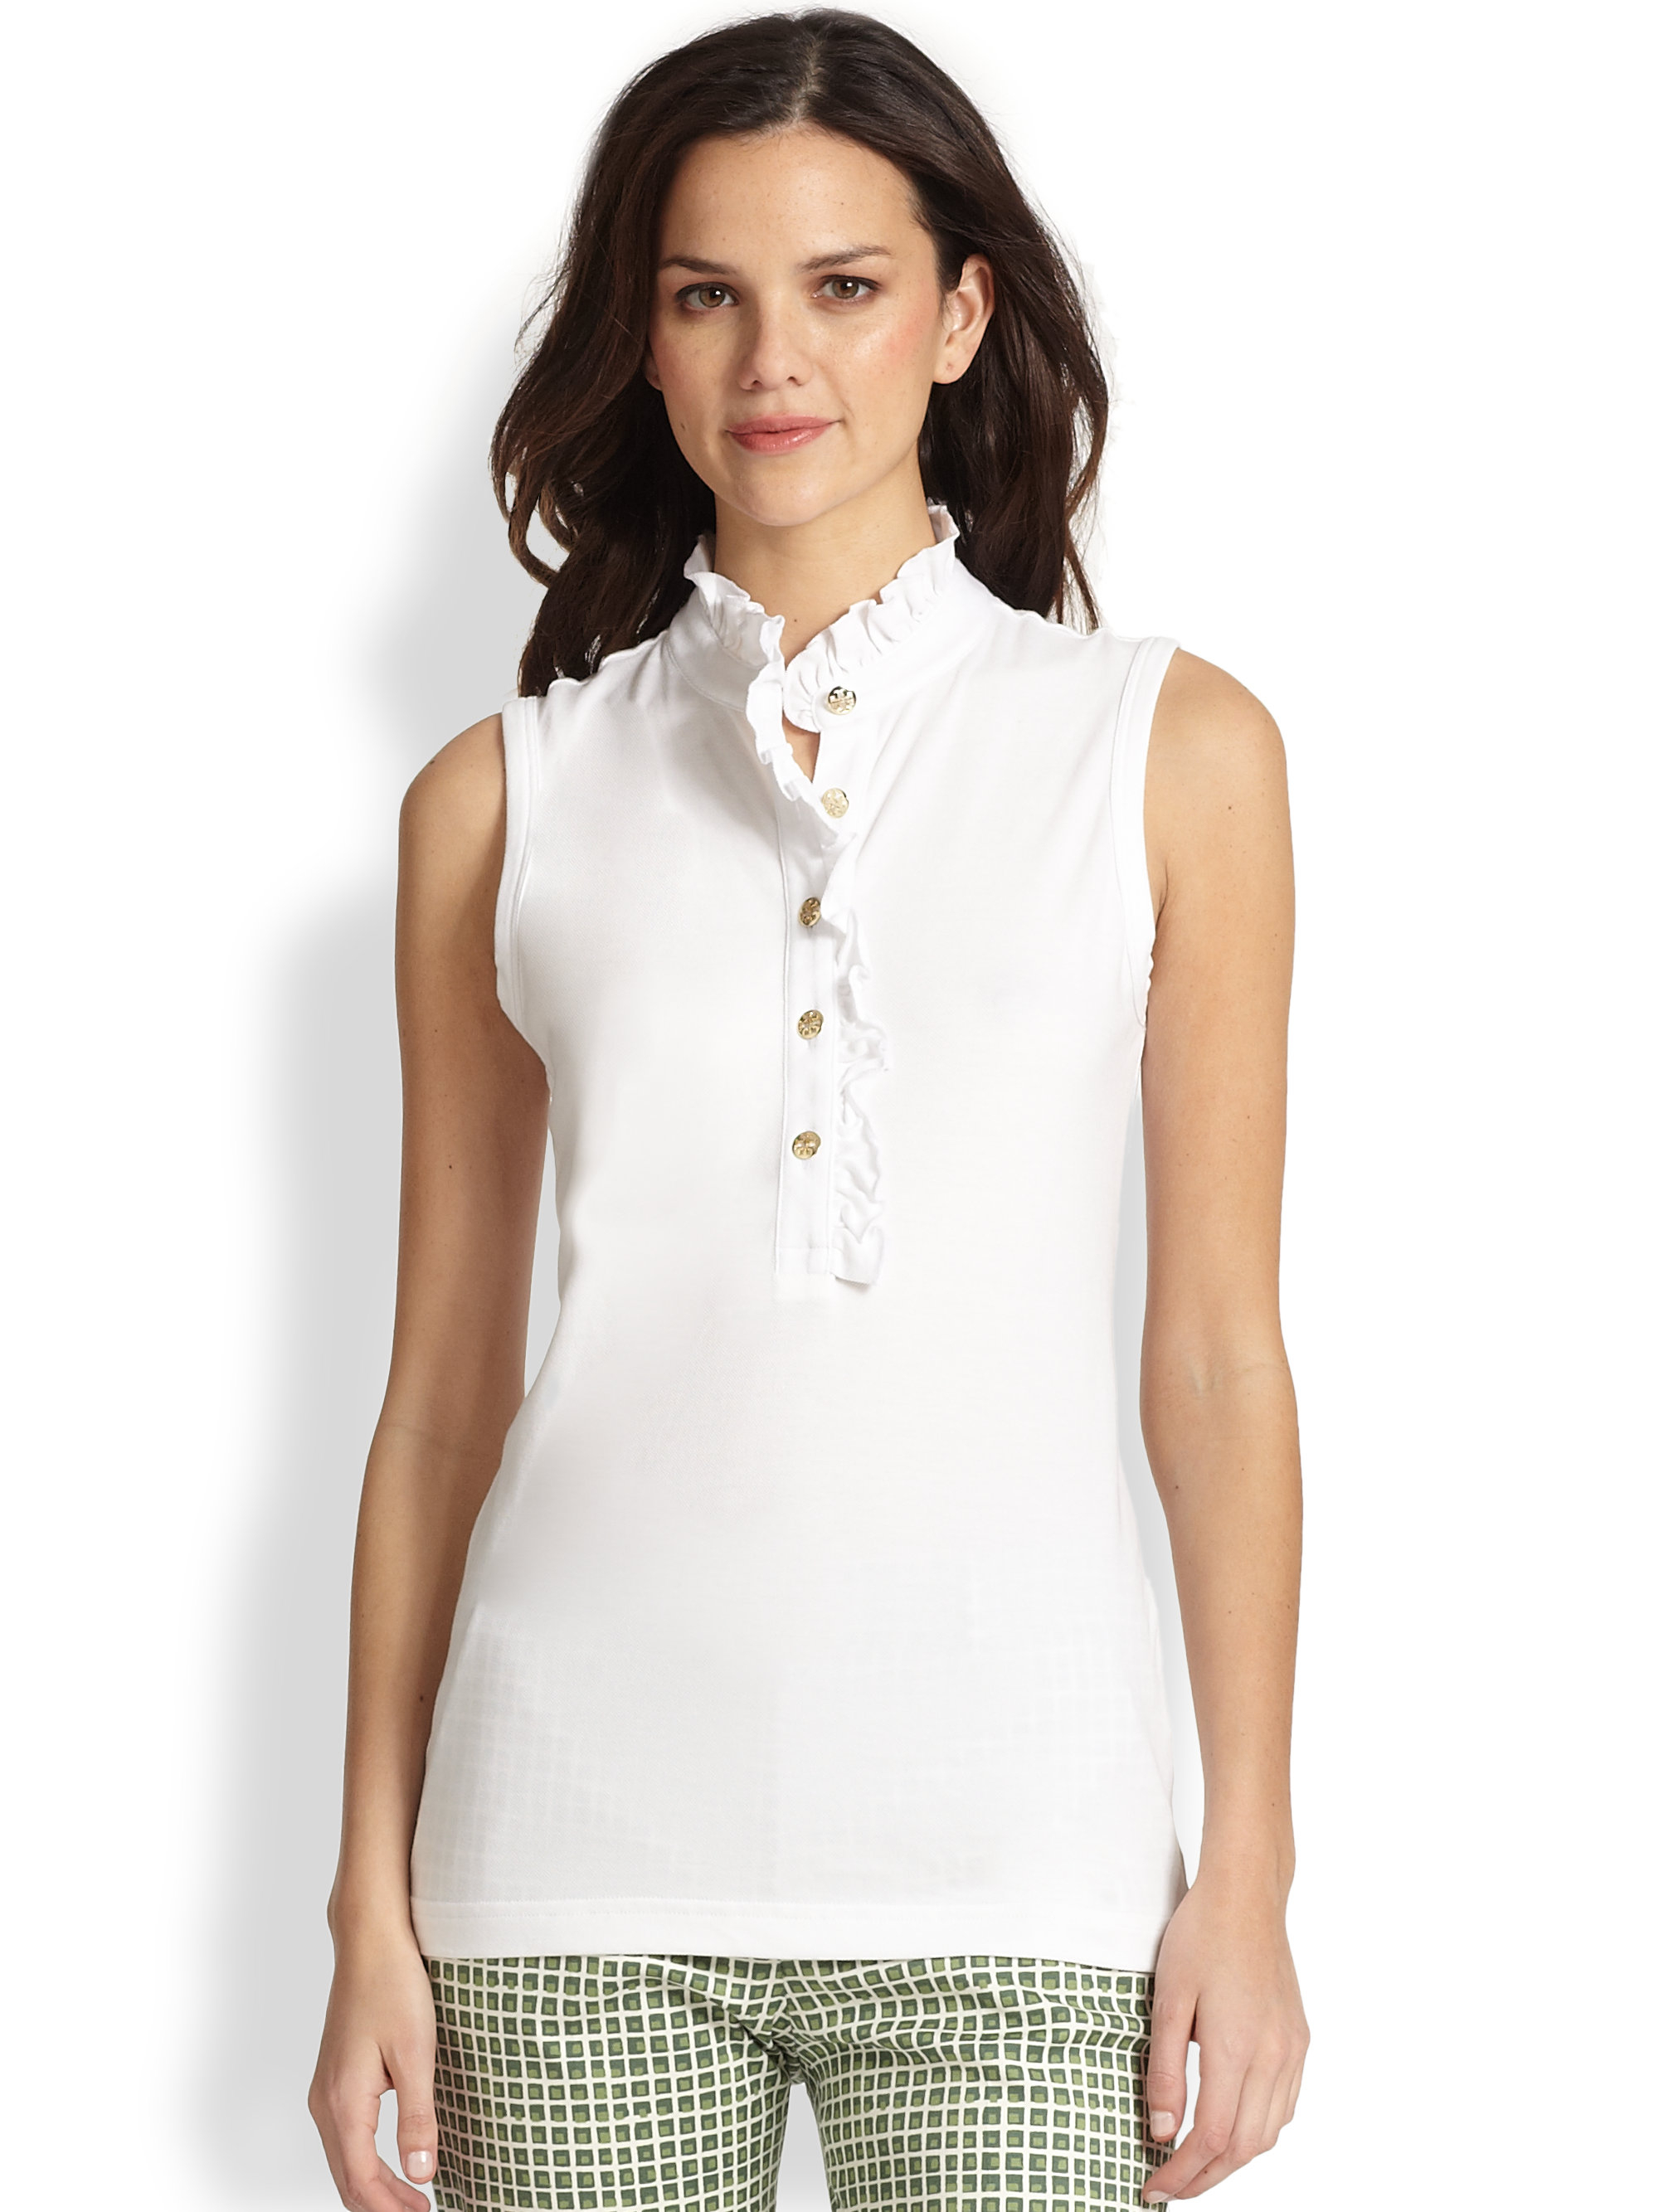 Tory burch sleeveless lidia polo shirt in white lyst for Tory burch fashion island